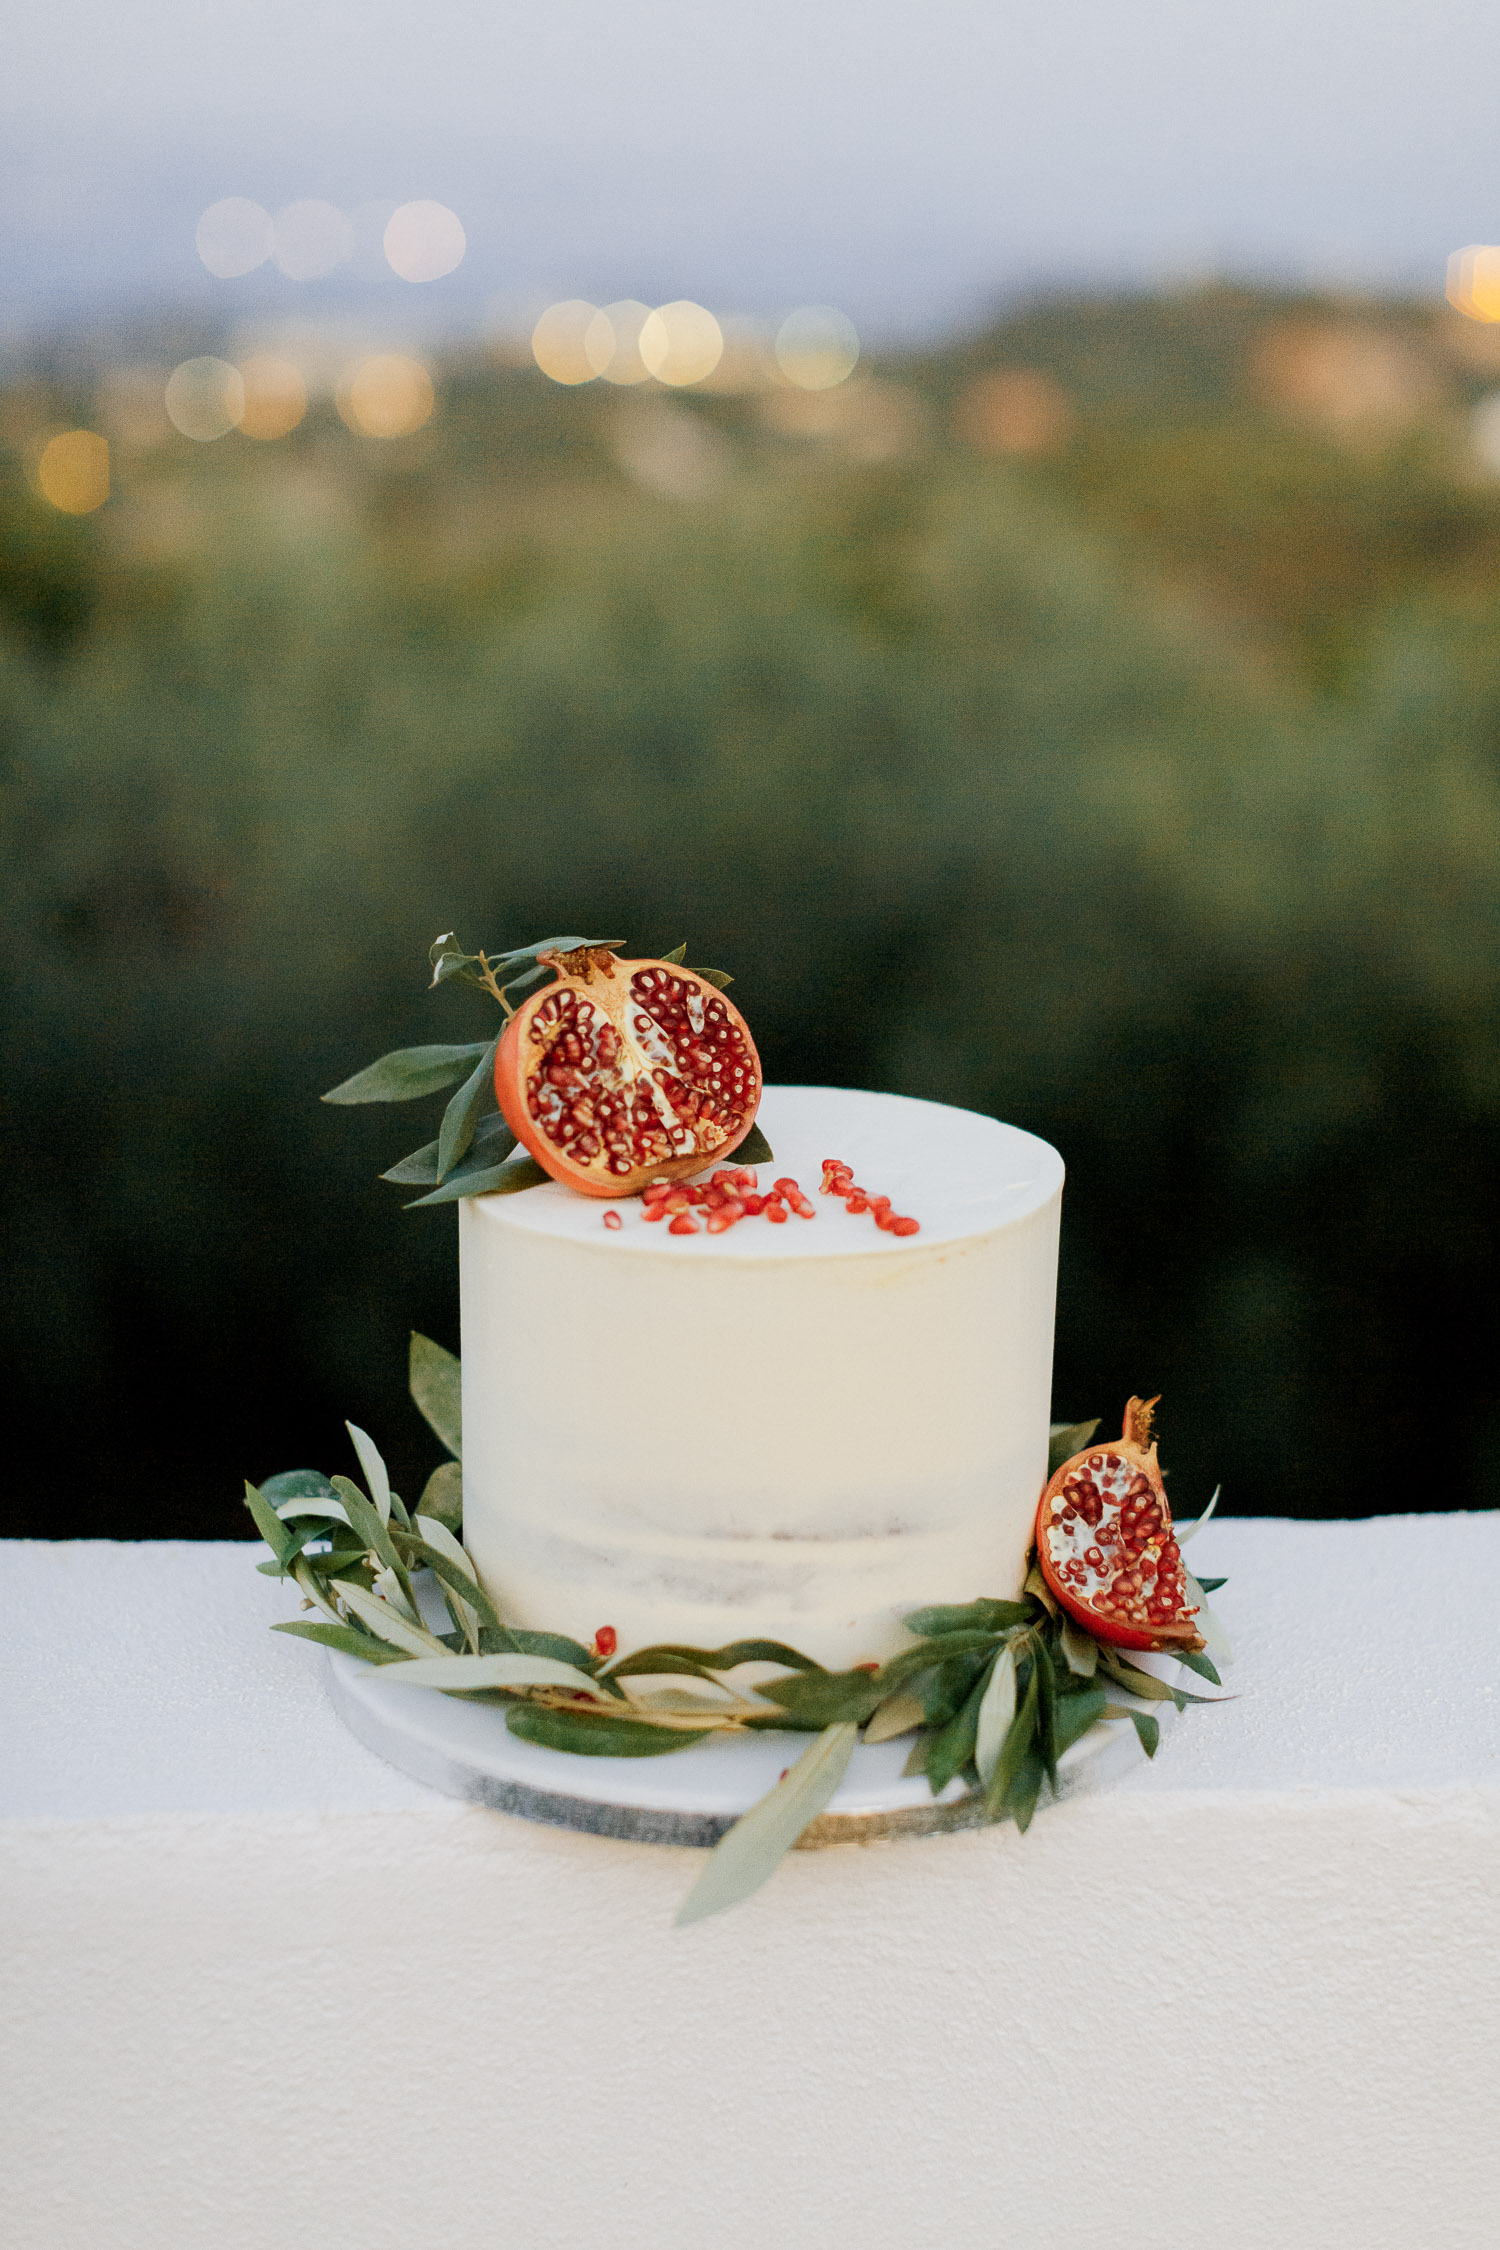 Pomegranate wedding naked cake with olive tree details at Old World micro wedding in Corfu Island